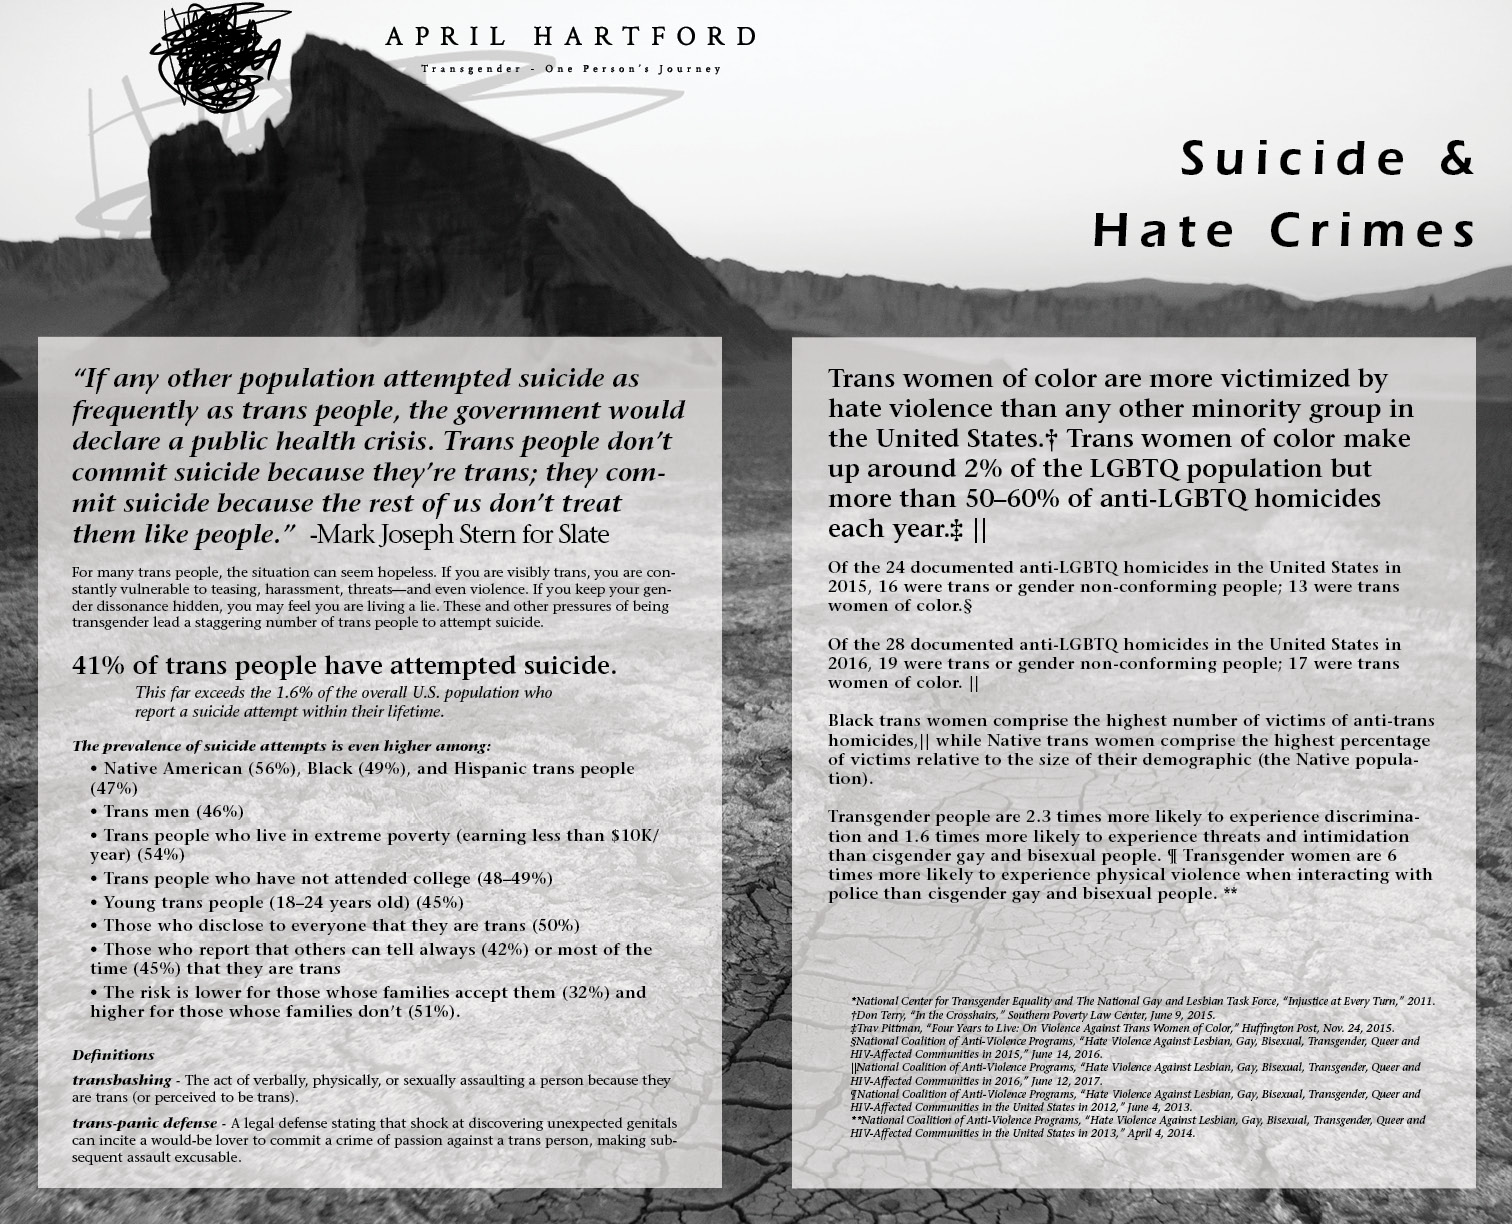 Suicide and Hate Crimes